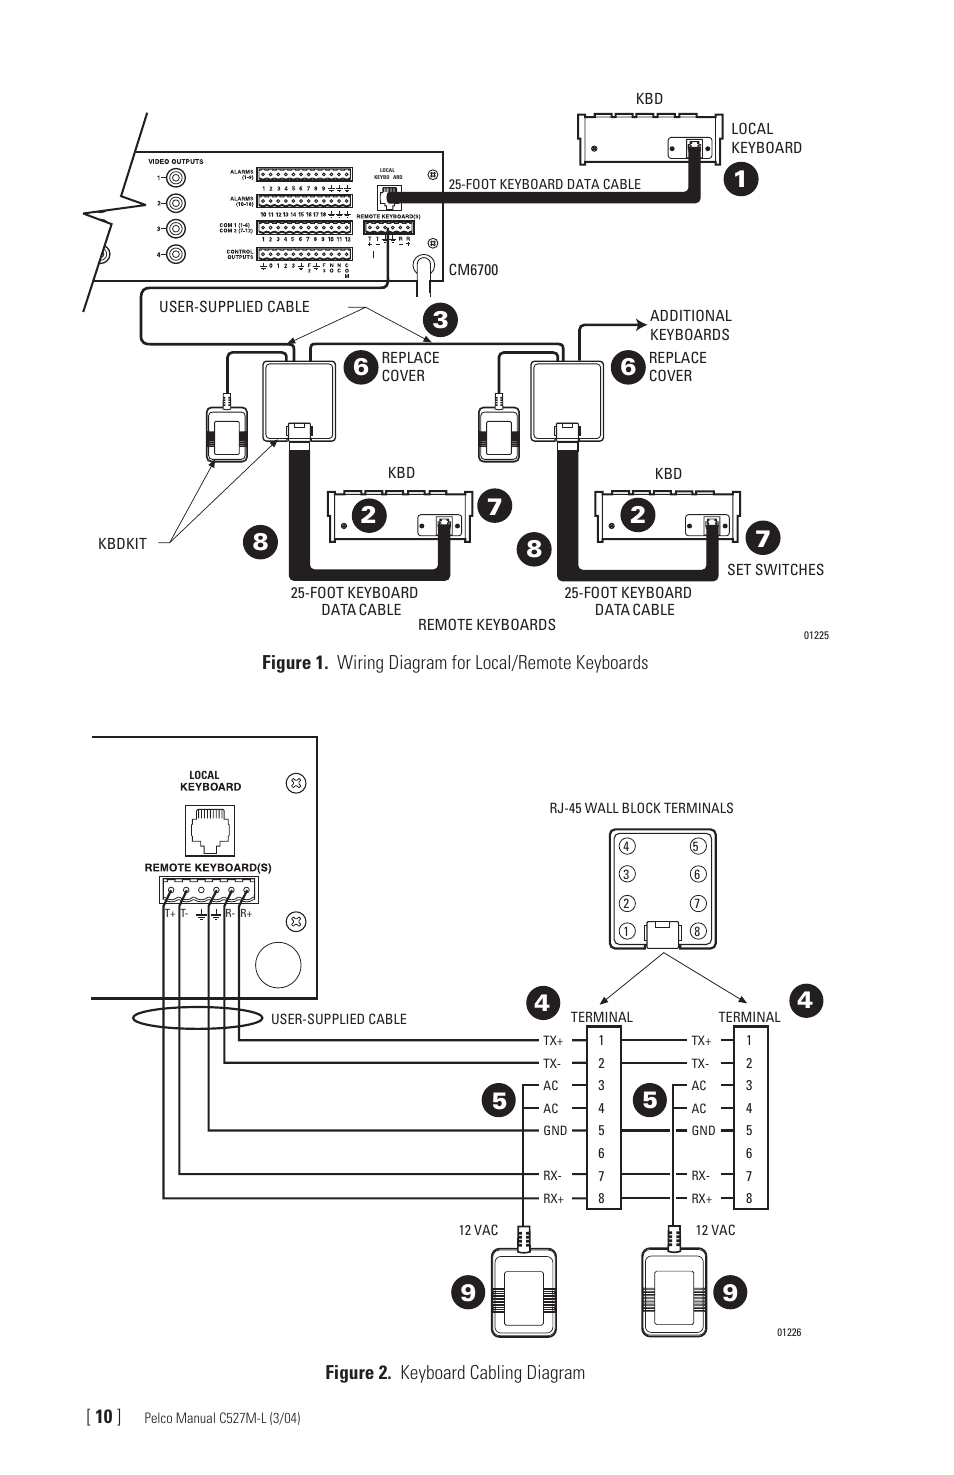 Pelco Ptz Camera Wiring Diagram Trusted Diagrams Sensormatic Keyboard Product U2022 Swann